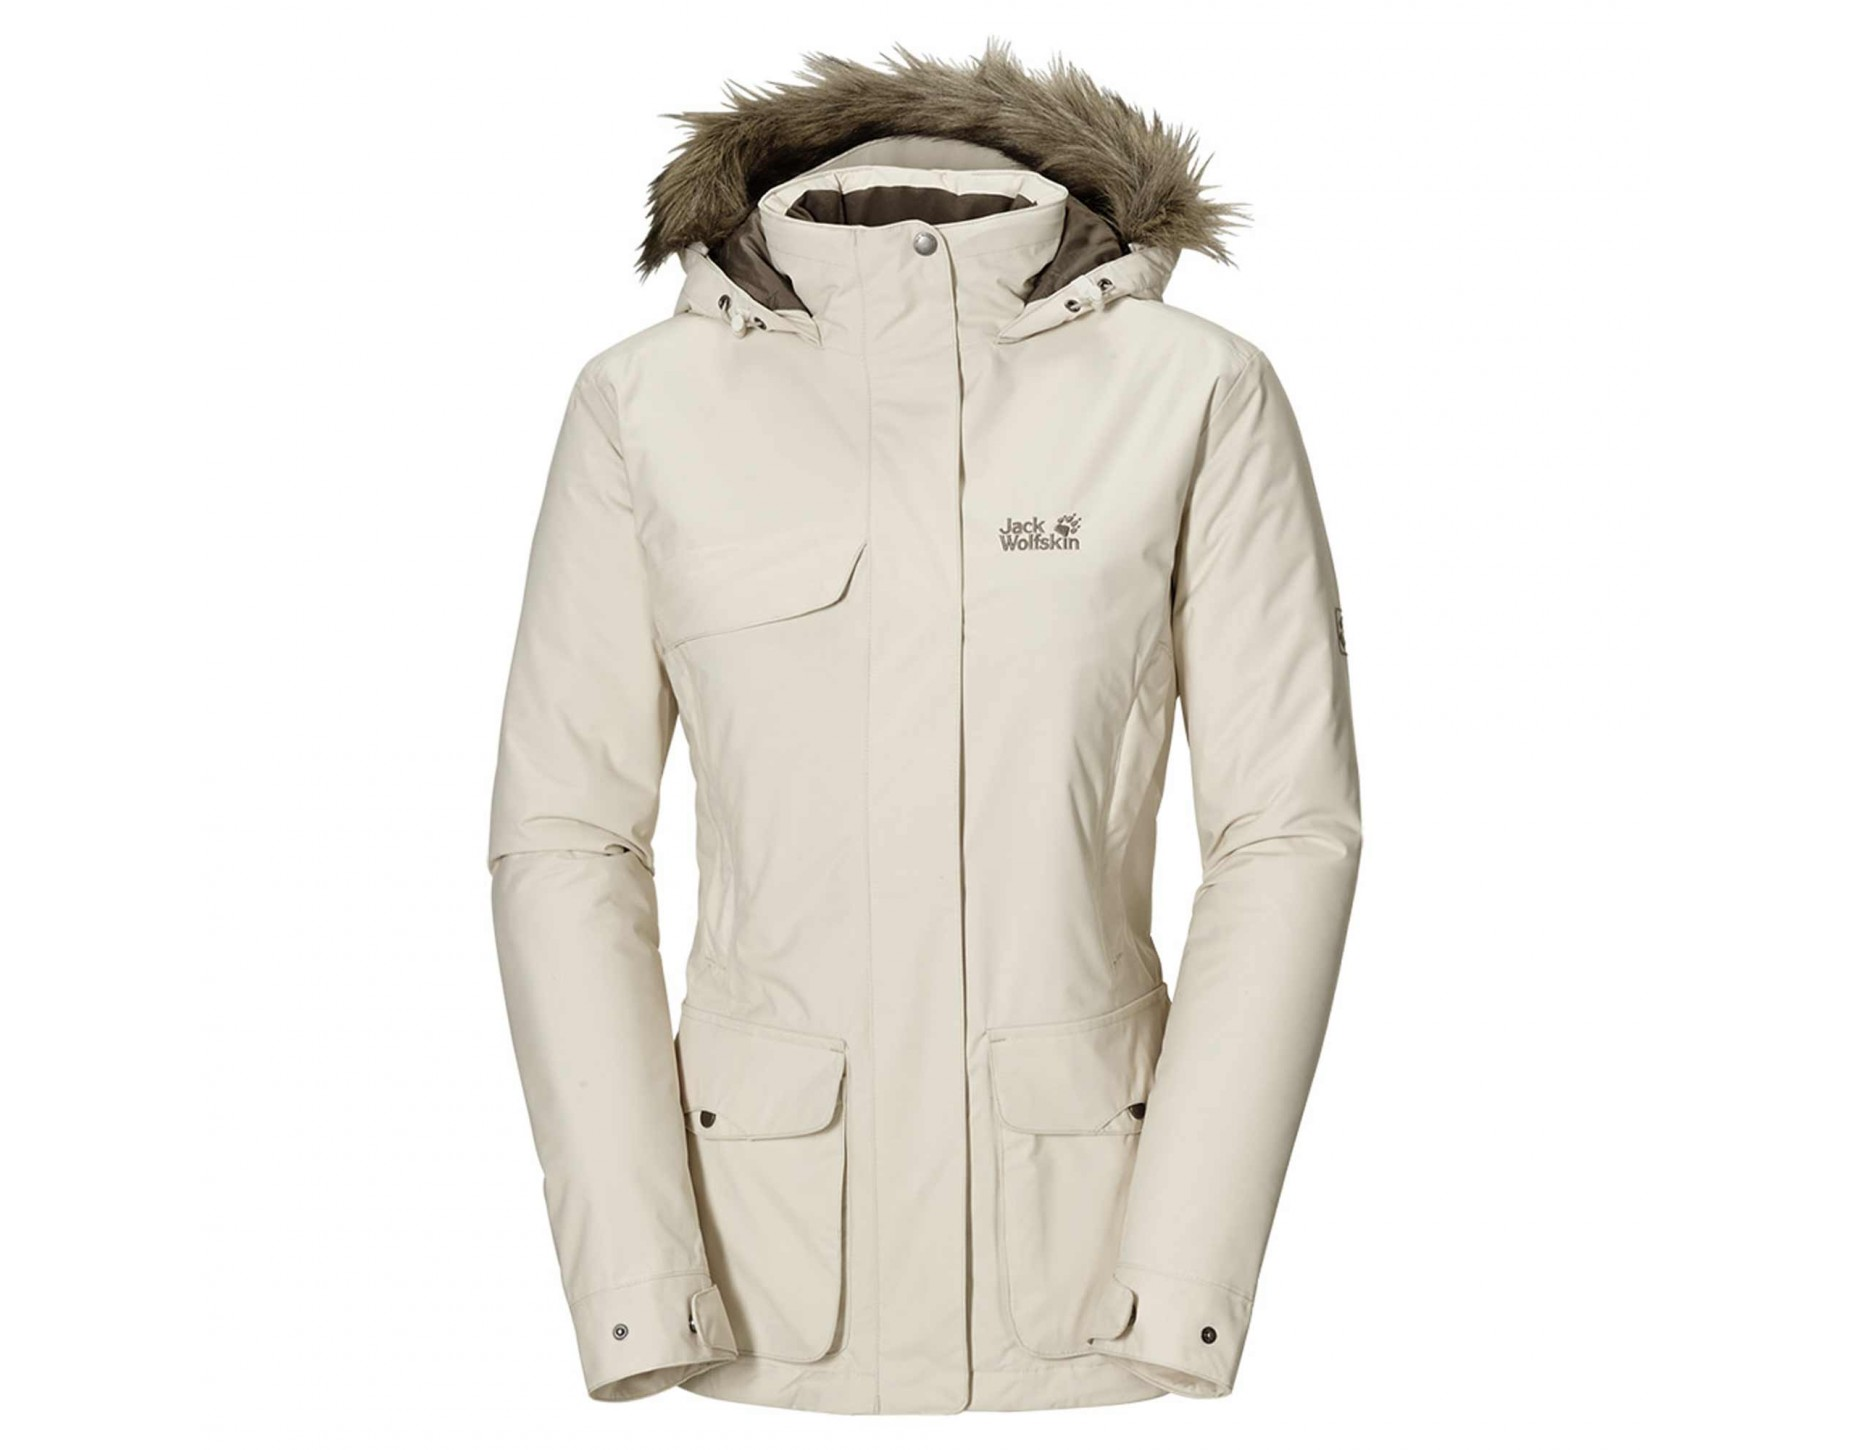 Jack Wolfskin KELOWNA PARKA women's jacket offers at the cycling